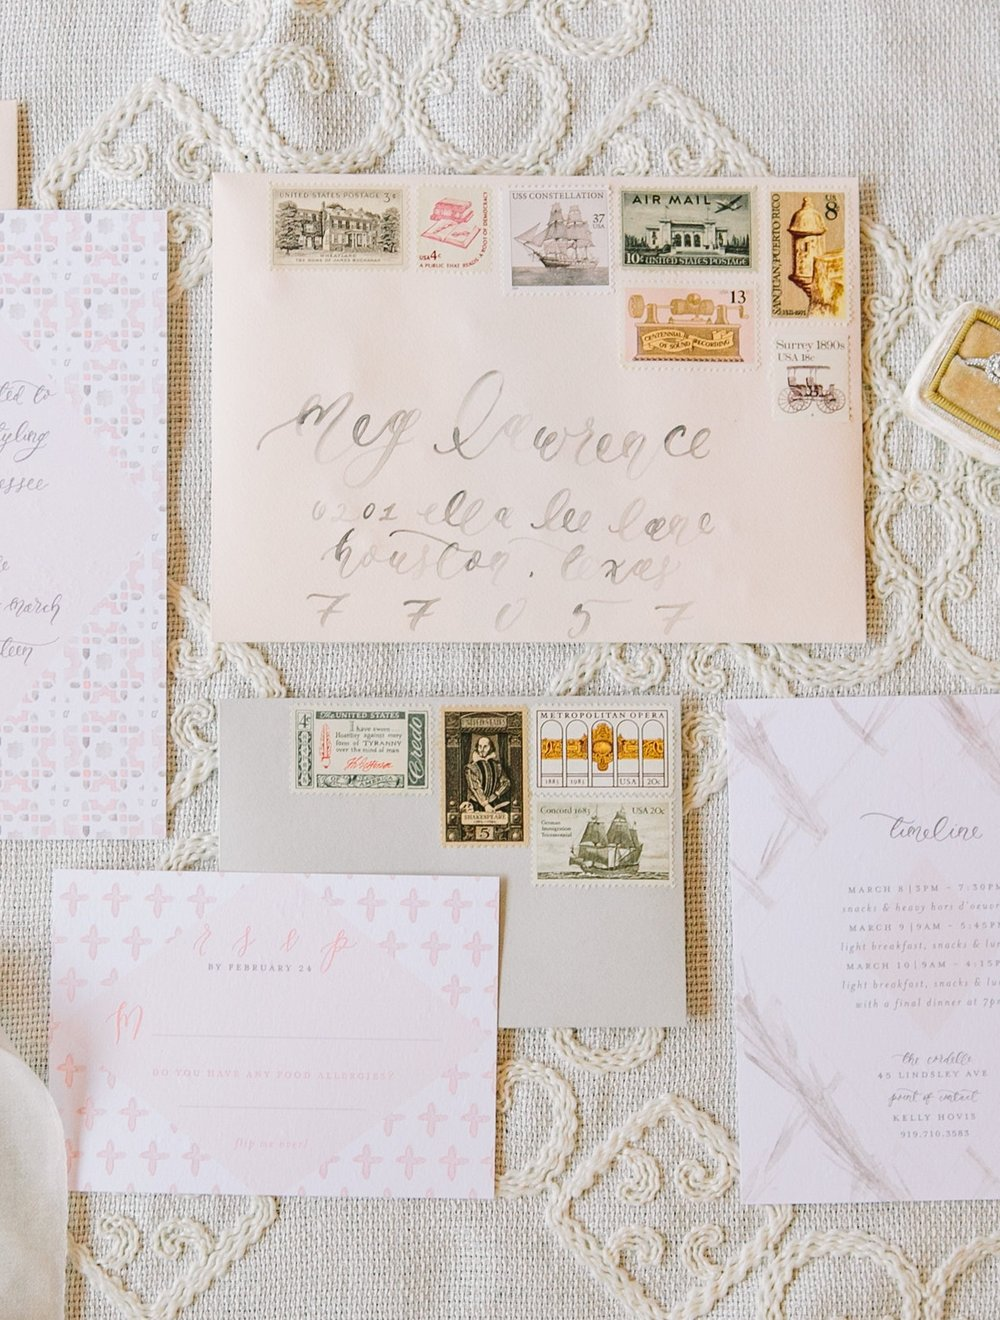 Vintage Postage Stamps from Verde Studio | Comparing Wedding Postage Options | Standard USPS Postage, Custom Postage, and Vintage Postage Stamps - which style is the best fit for your wedding invitations? A free resource guide to my top 3 favorite sources for wedding postage! | Simply Jessica Marie